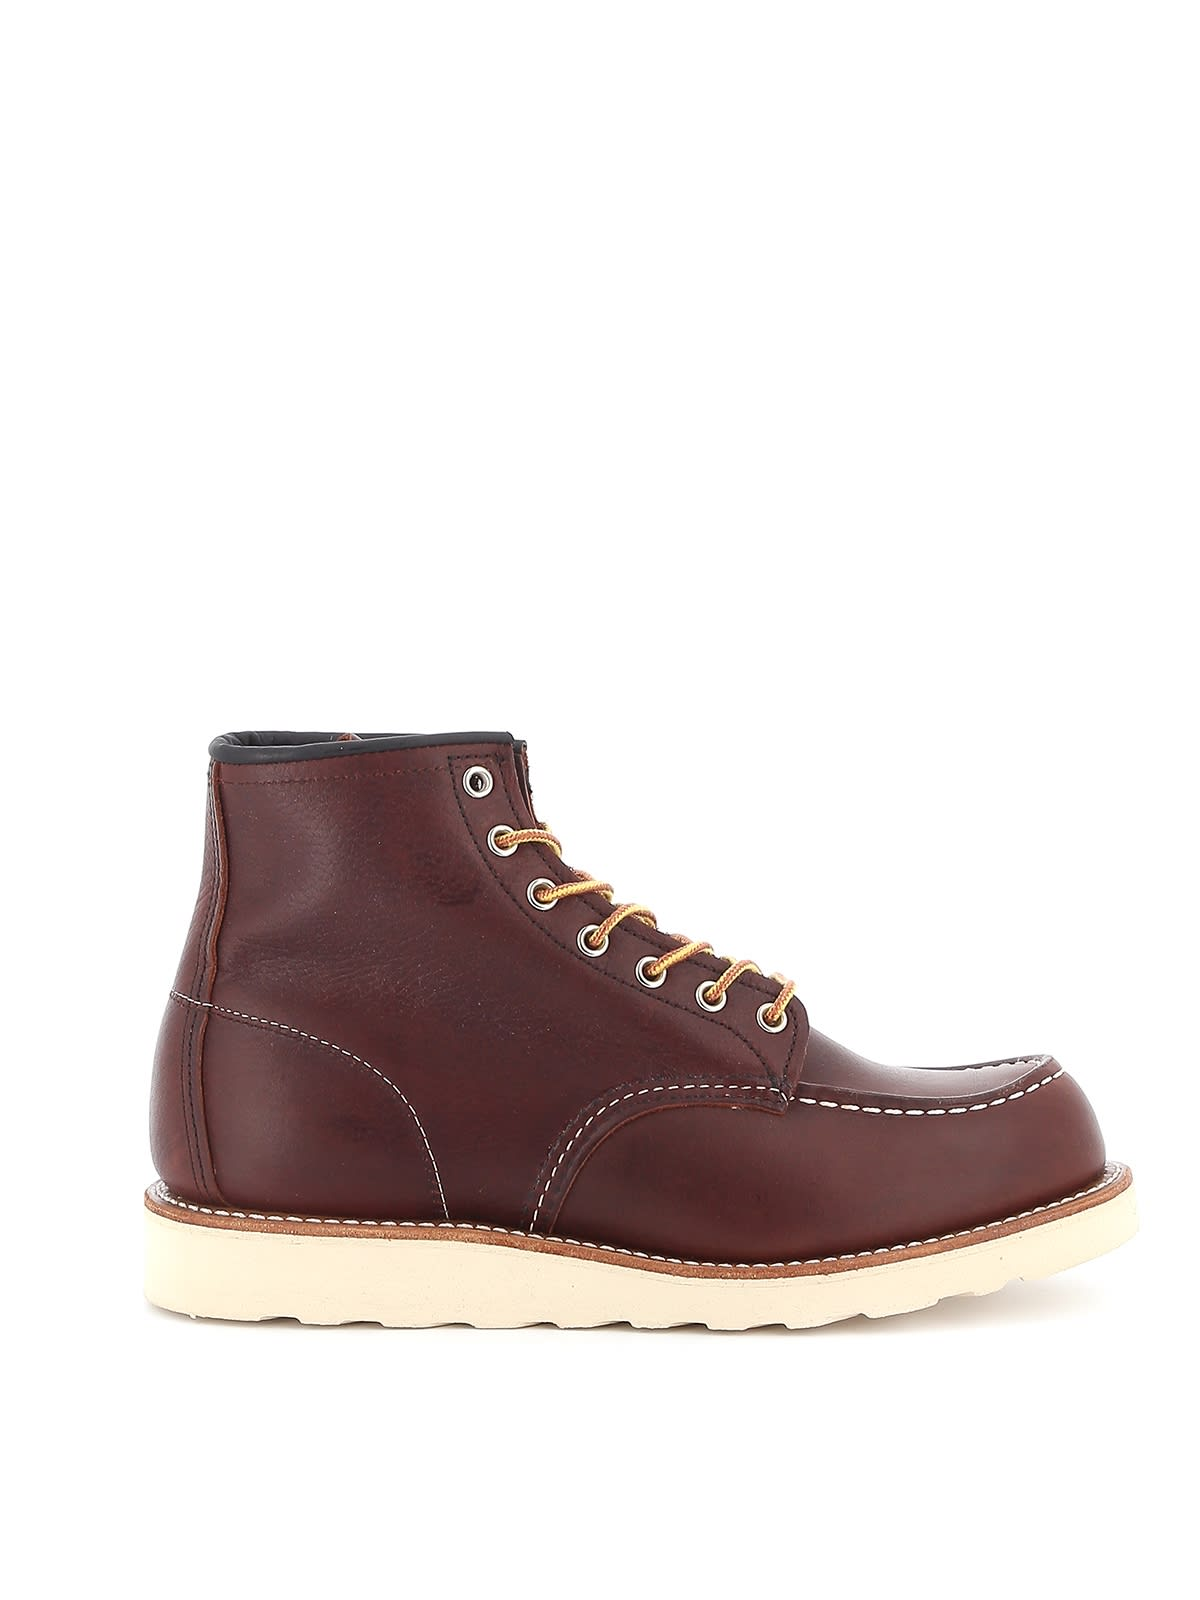 Red Wing Boot Leather Classic Moc Toe Briar Oil Slick